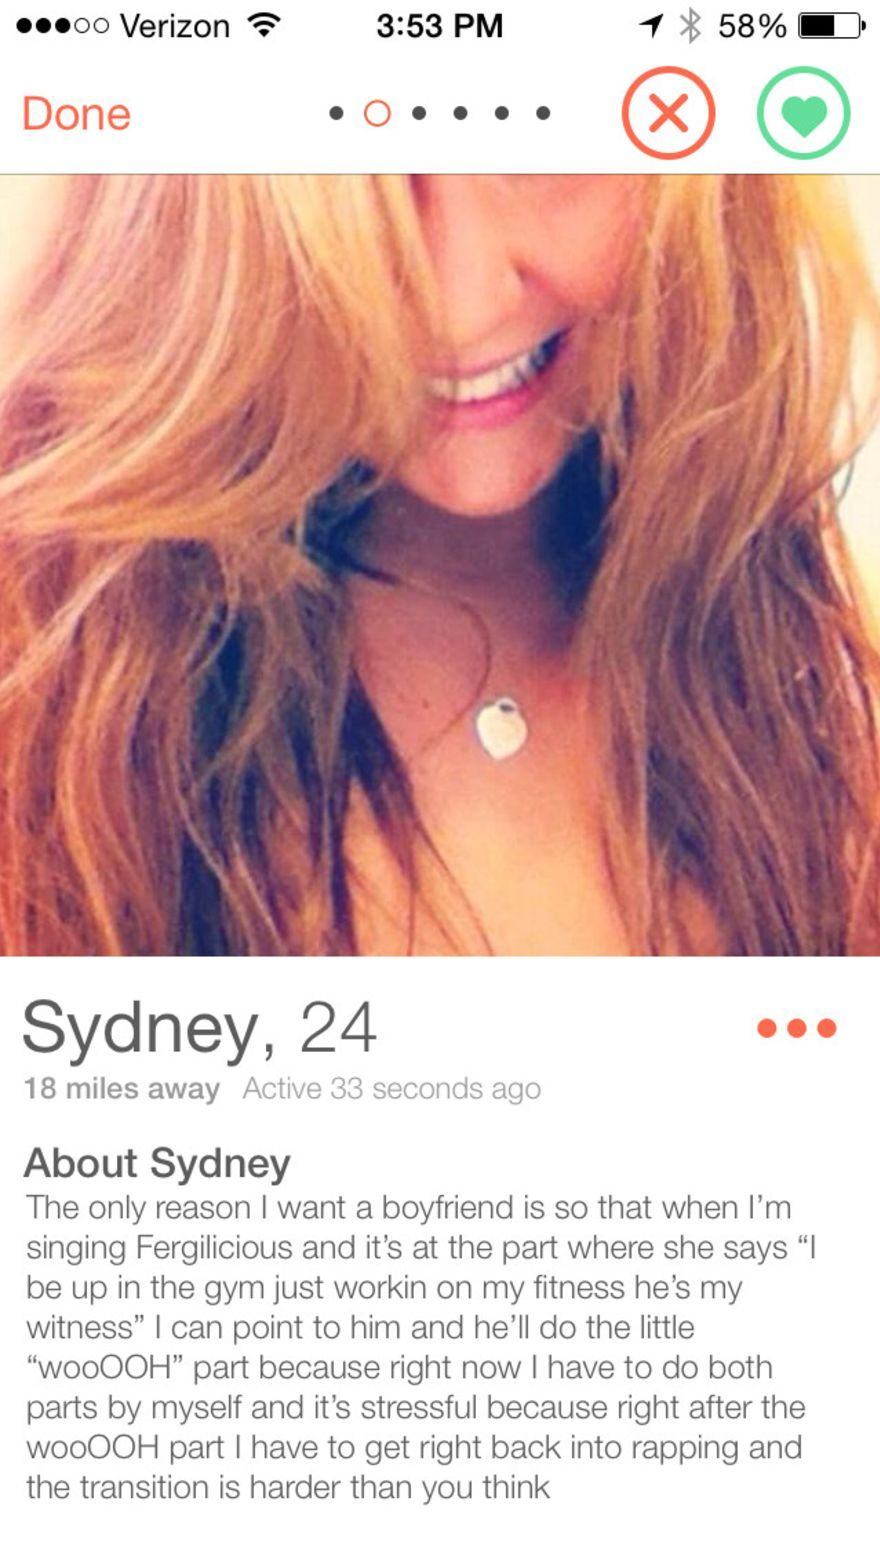 These Tinder Moments Will Shock You 5 Is Disturbing Tinder Humor Funny Tinder Profiles Funny Profile